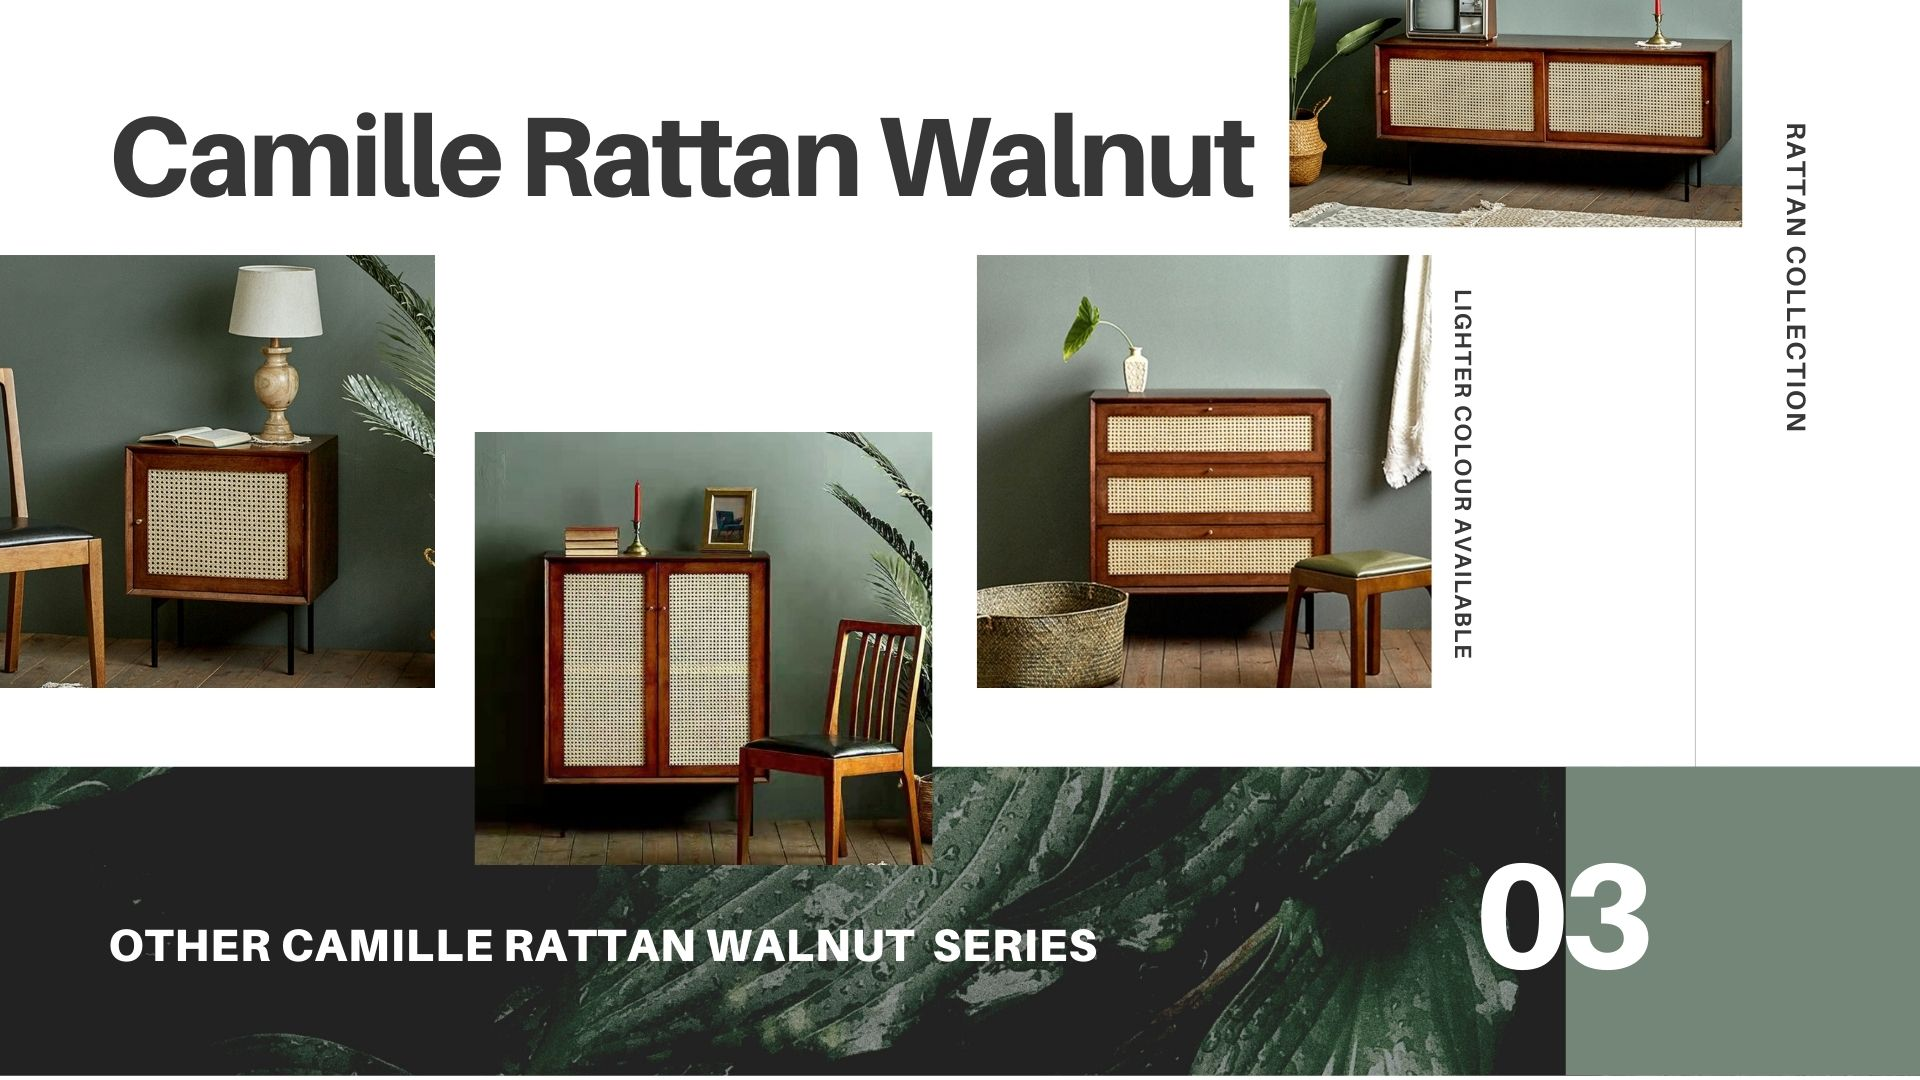 Camille Rattan Walnut Collection